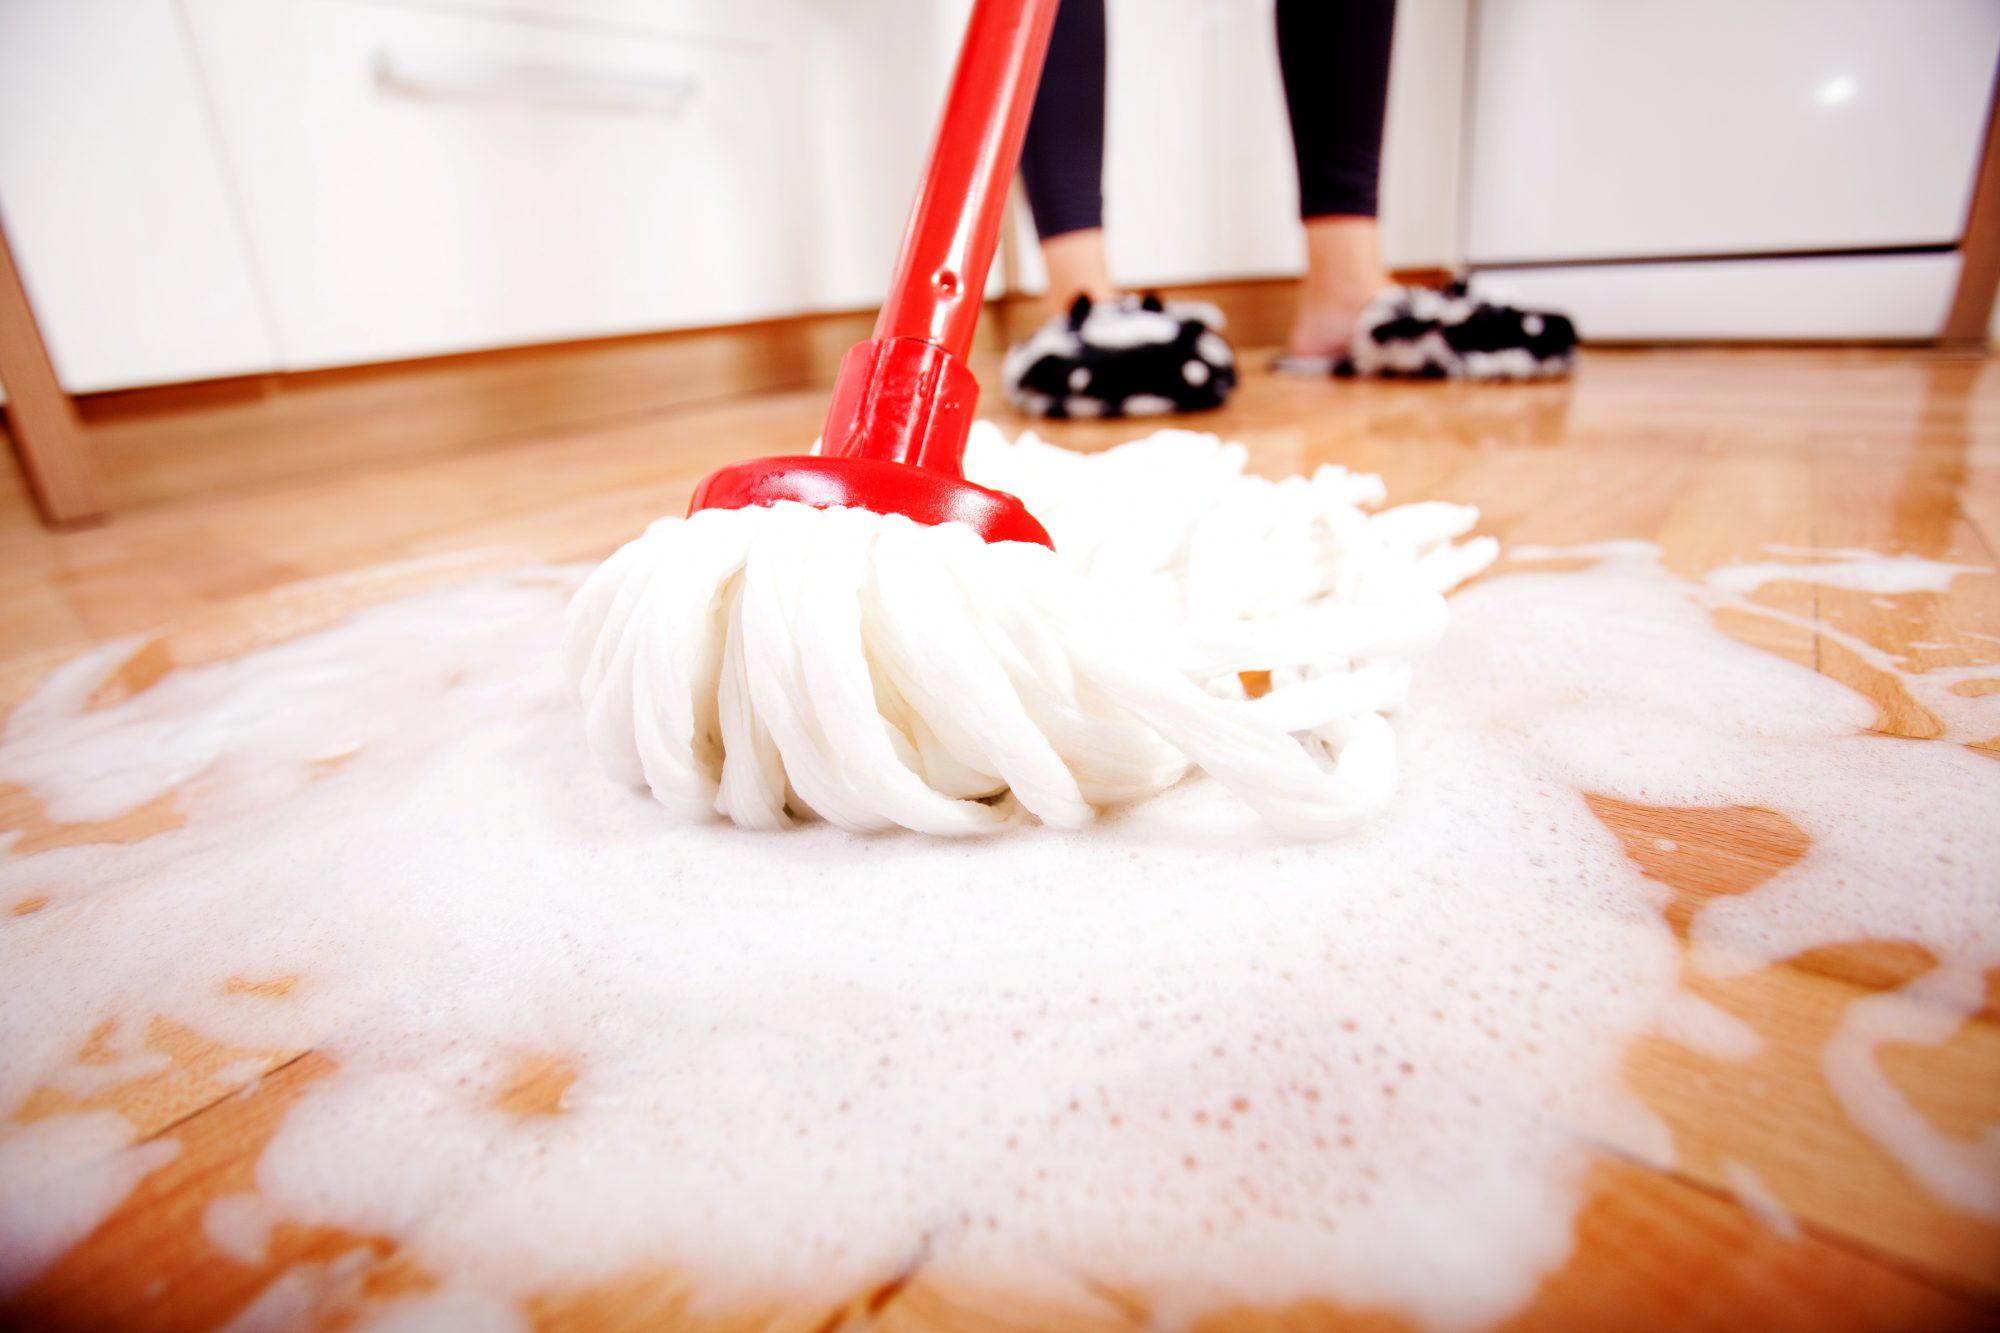 Woman mopping a wooden floor